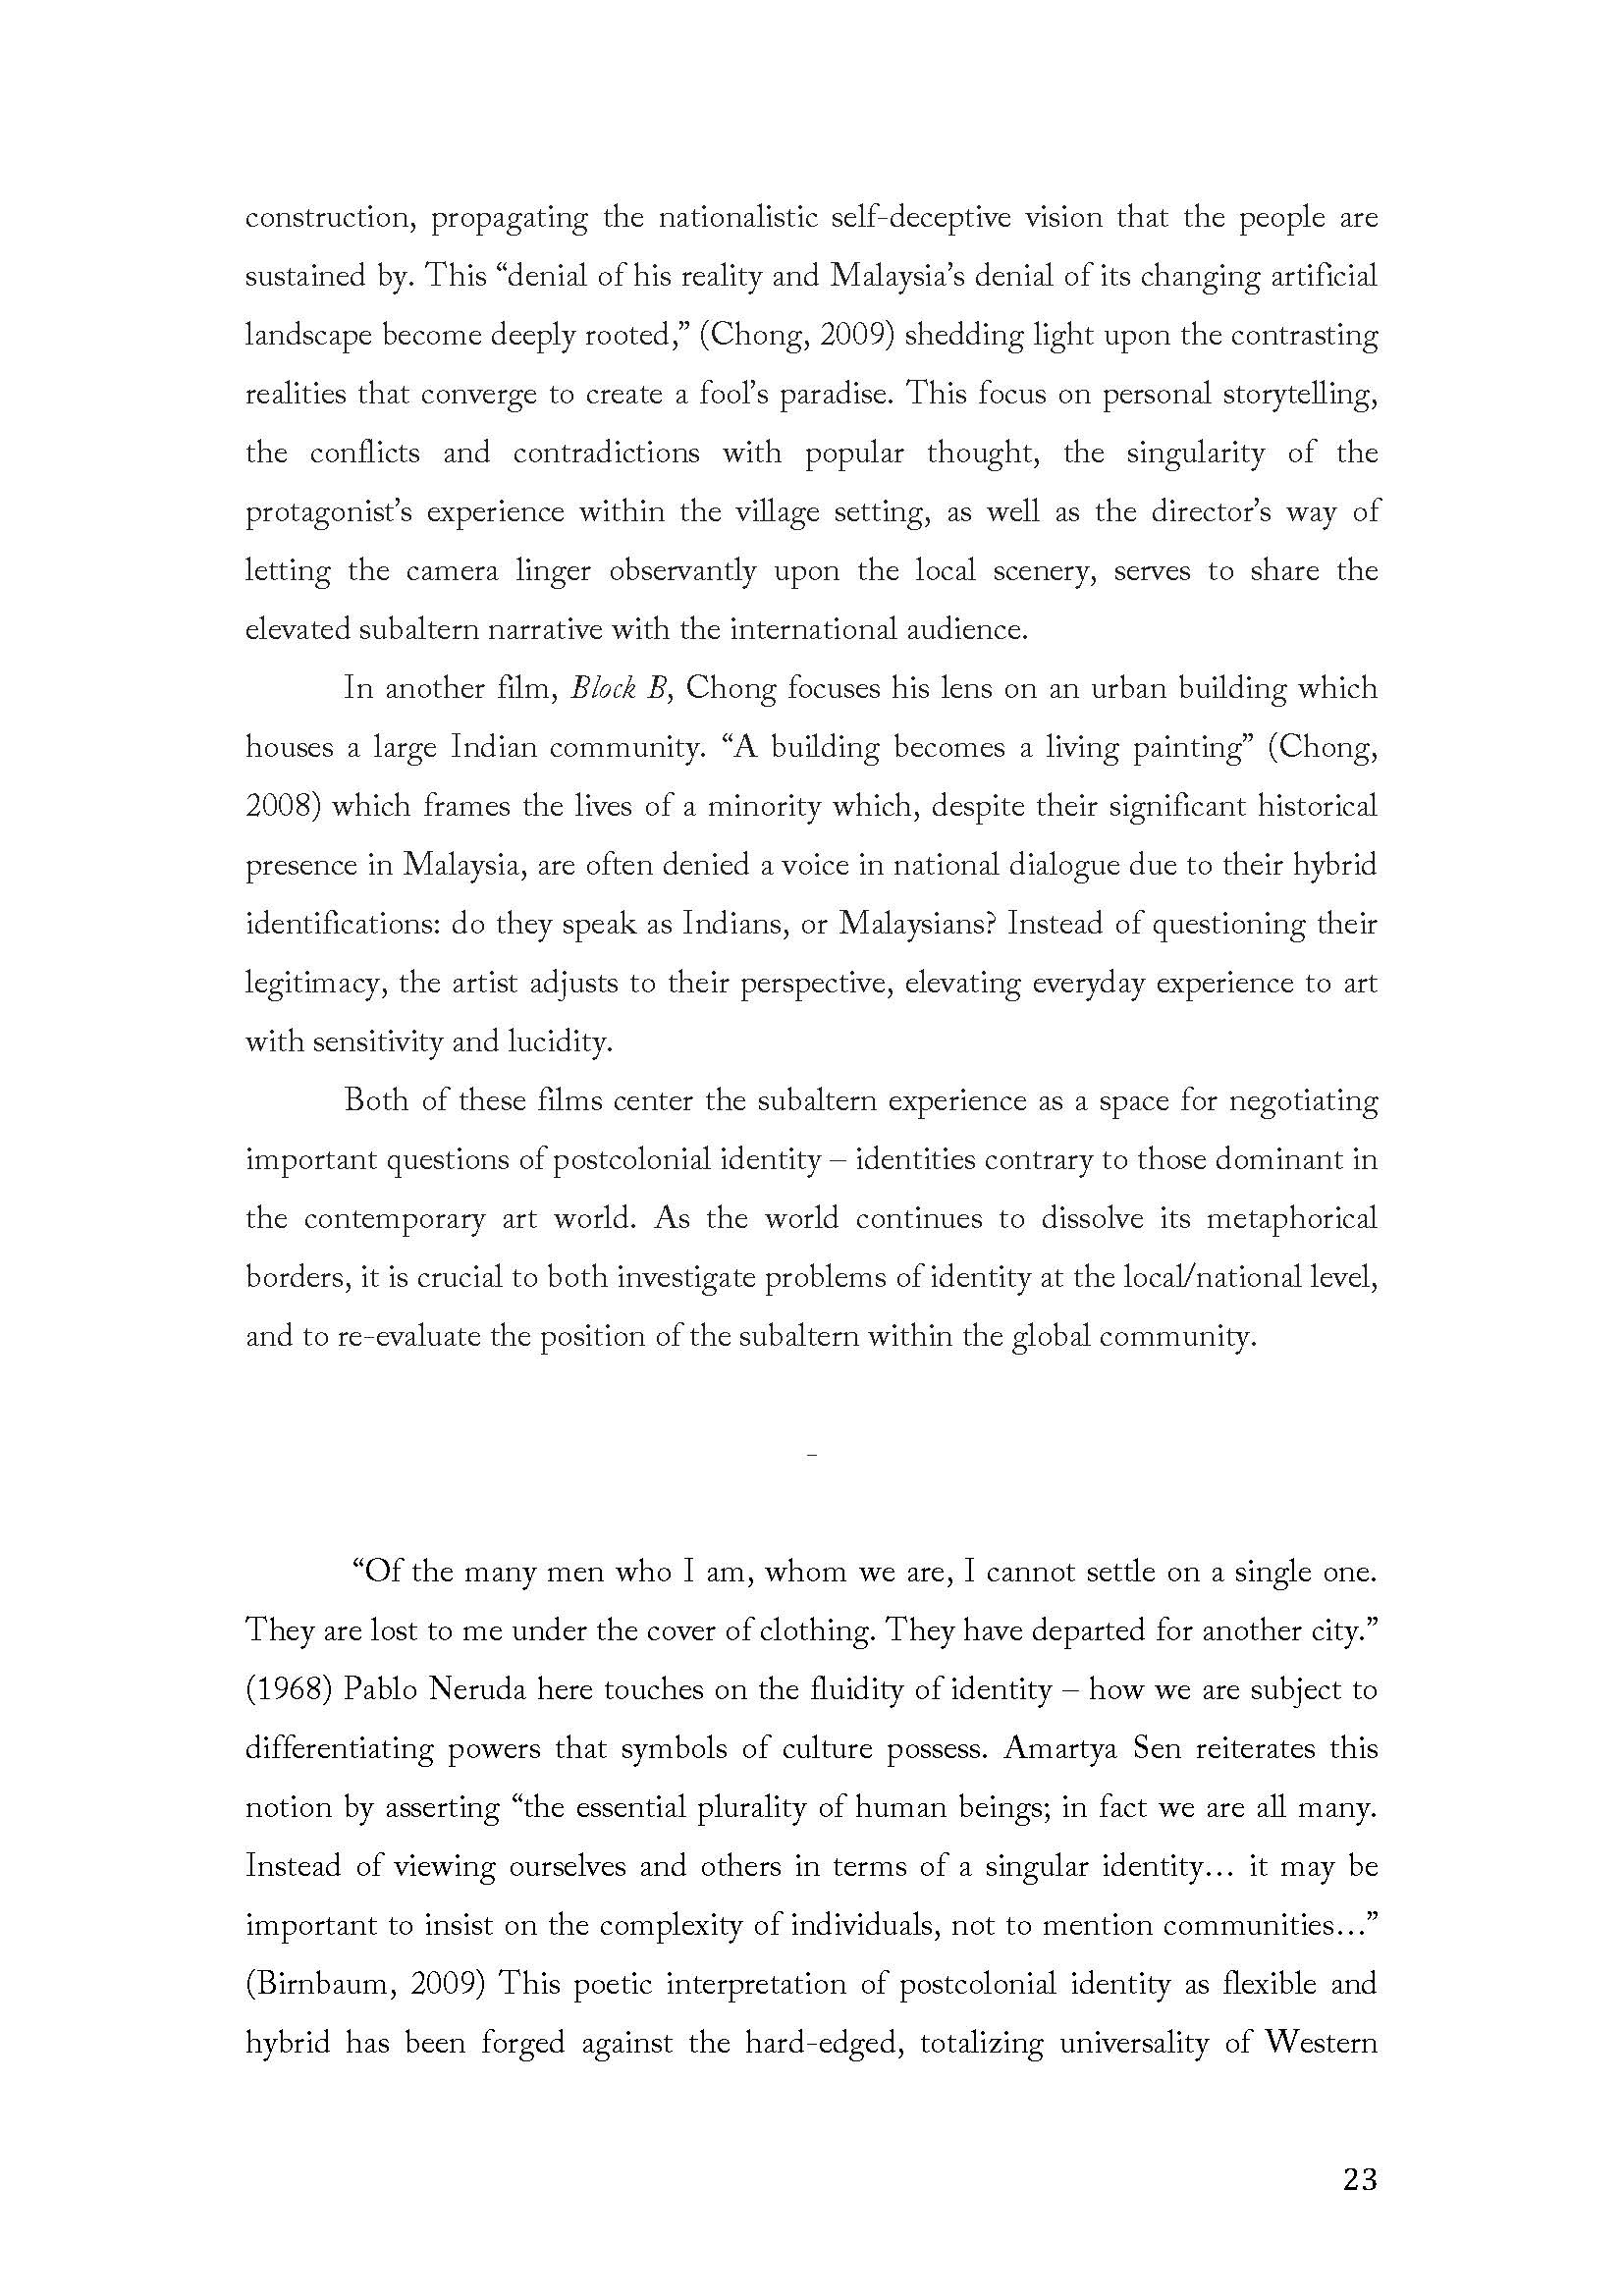 dissertationdraft2quoted_Page_23-min_1654